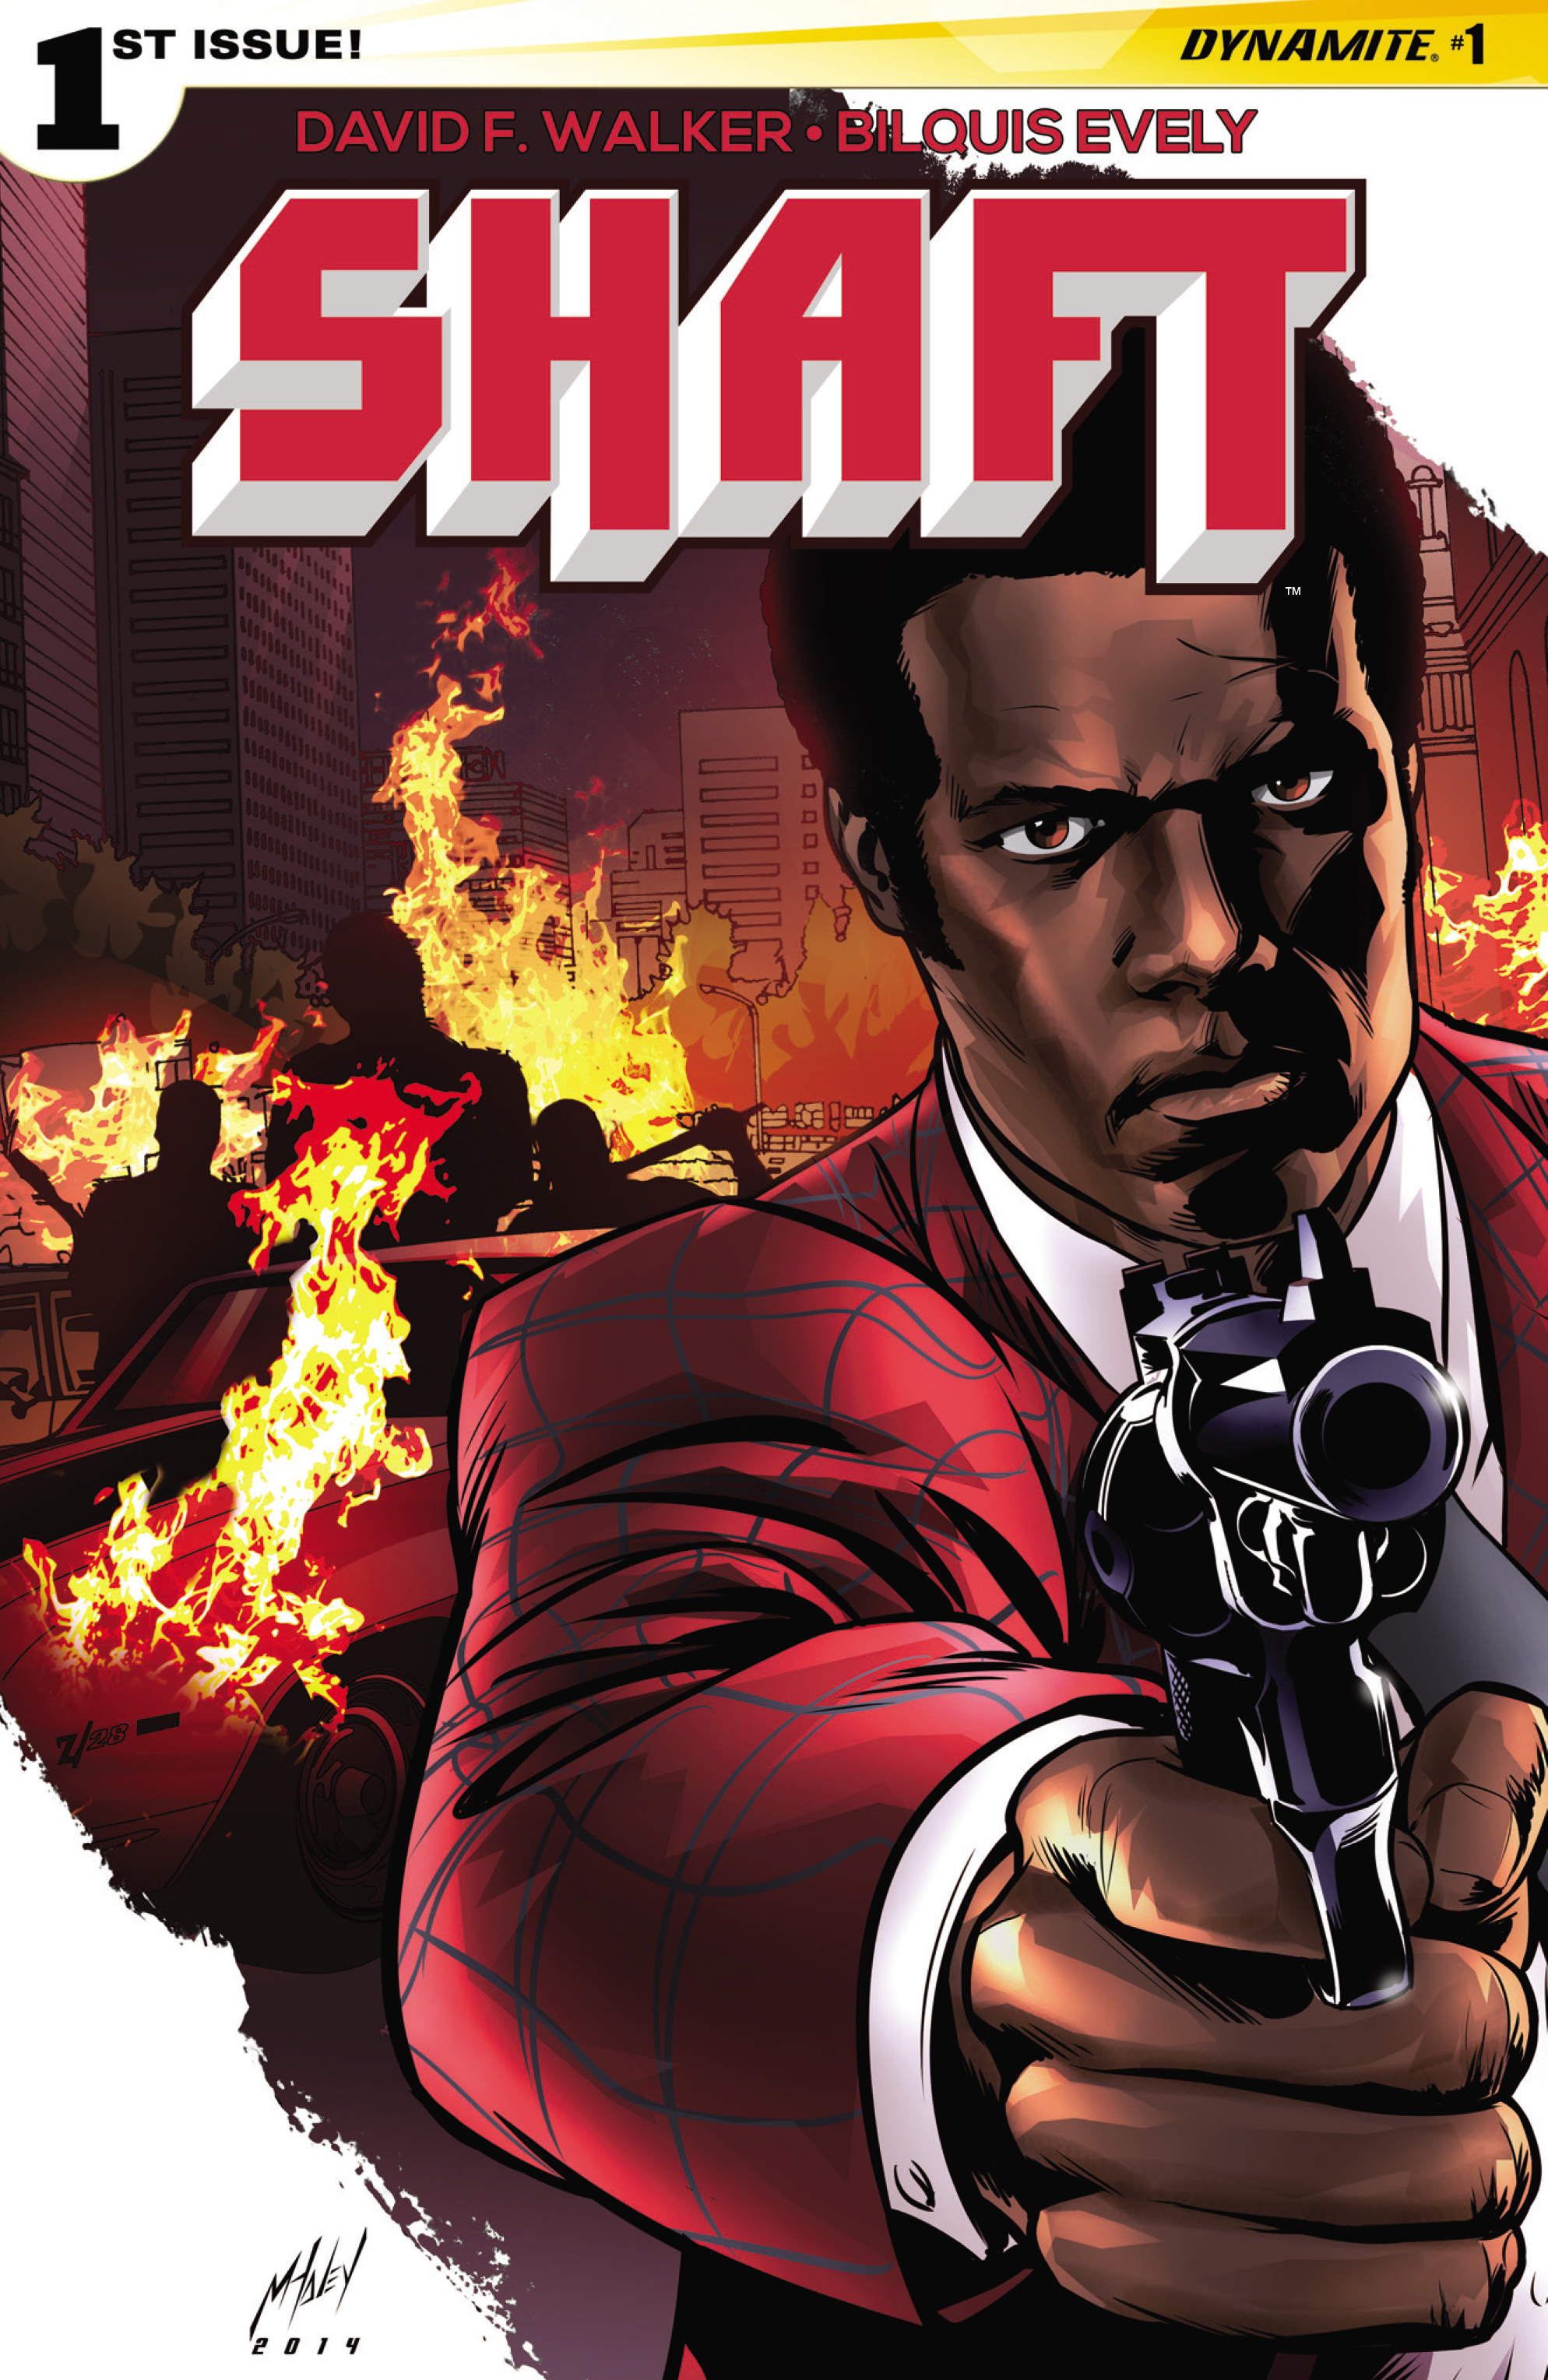 Read online Shaft comic -  Issue #1 - 5